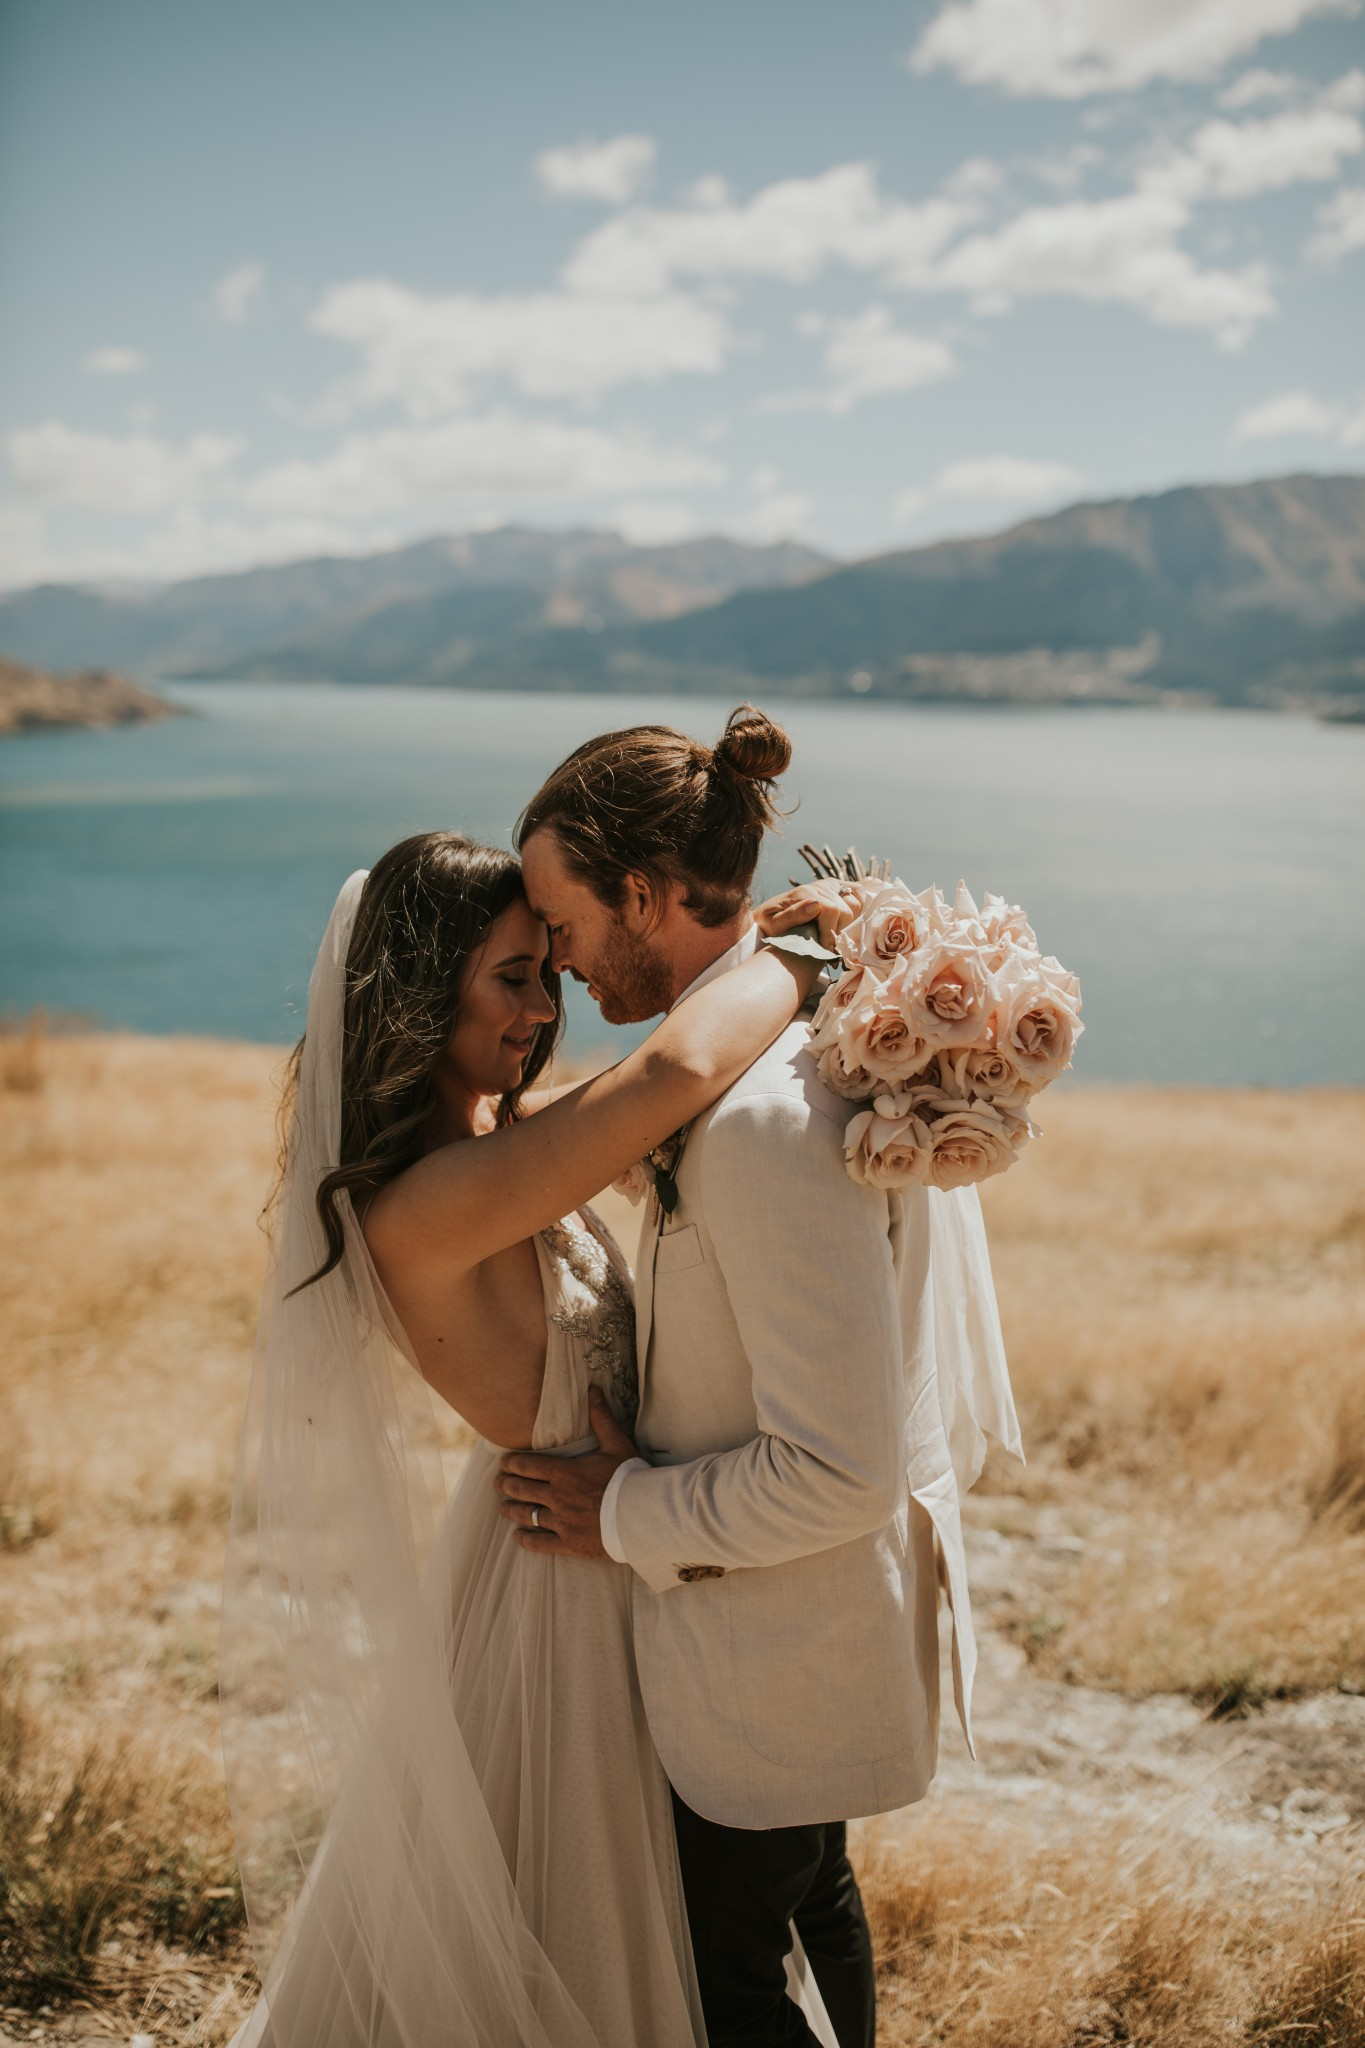 Jaycee and Cameron - Real Queenstown Wedding | One Fine Day